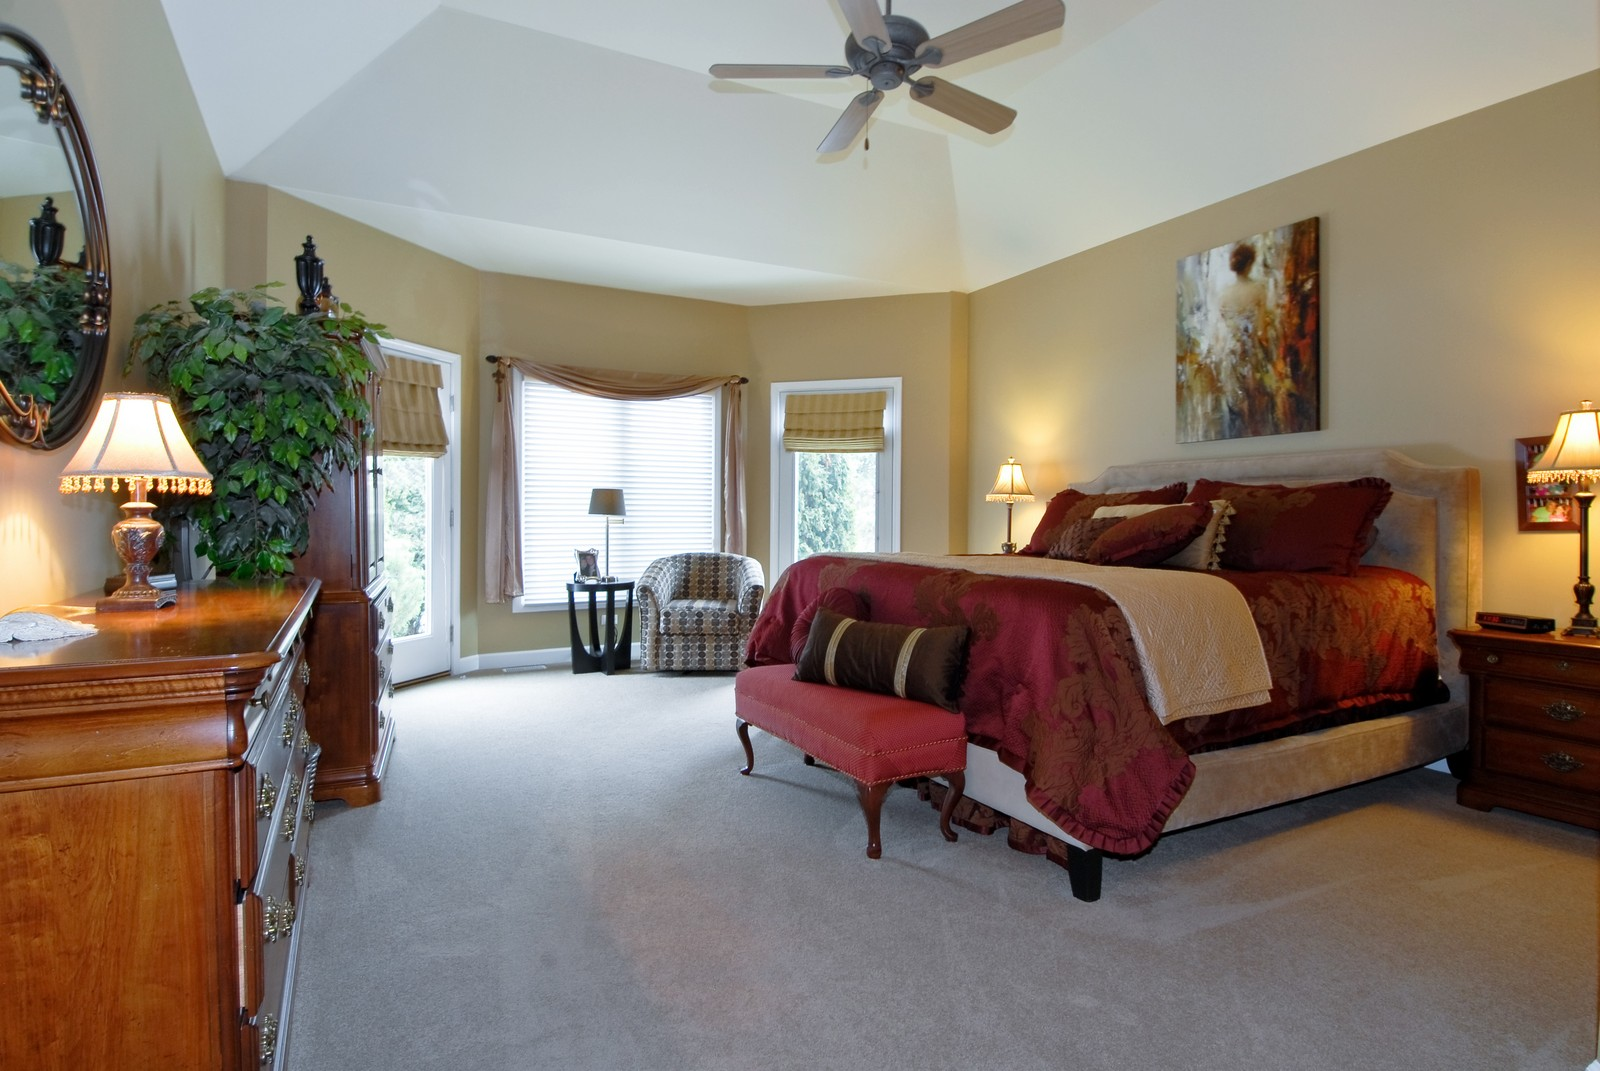 Real Estate Photography - 701 Ashton Ln, South Elgin, IL, 60177 - Master Bedroom